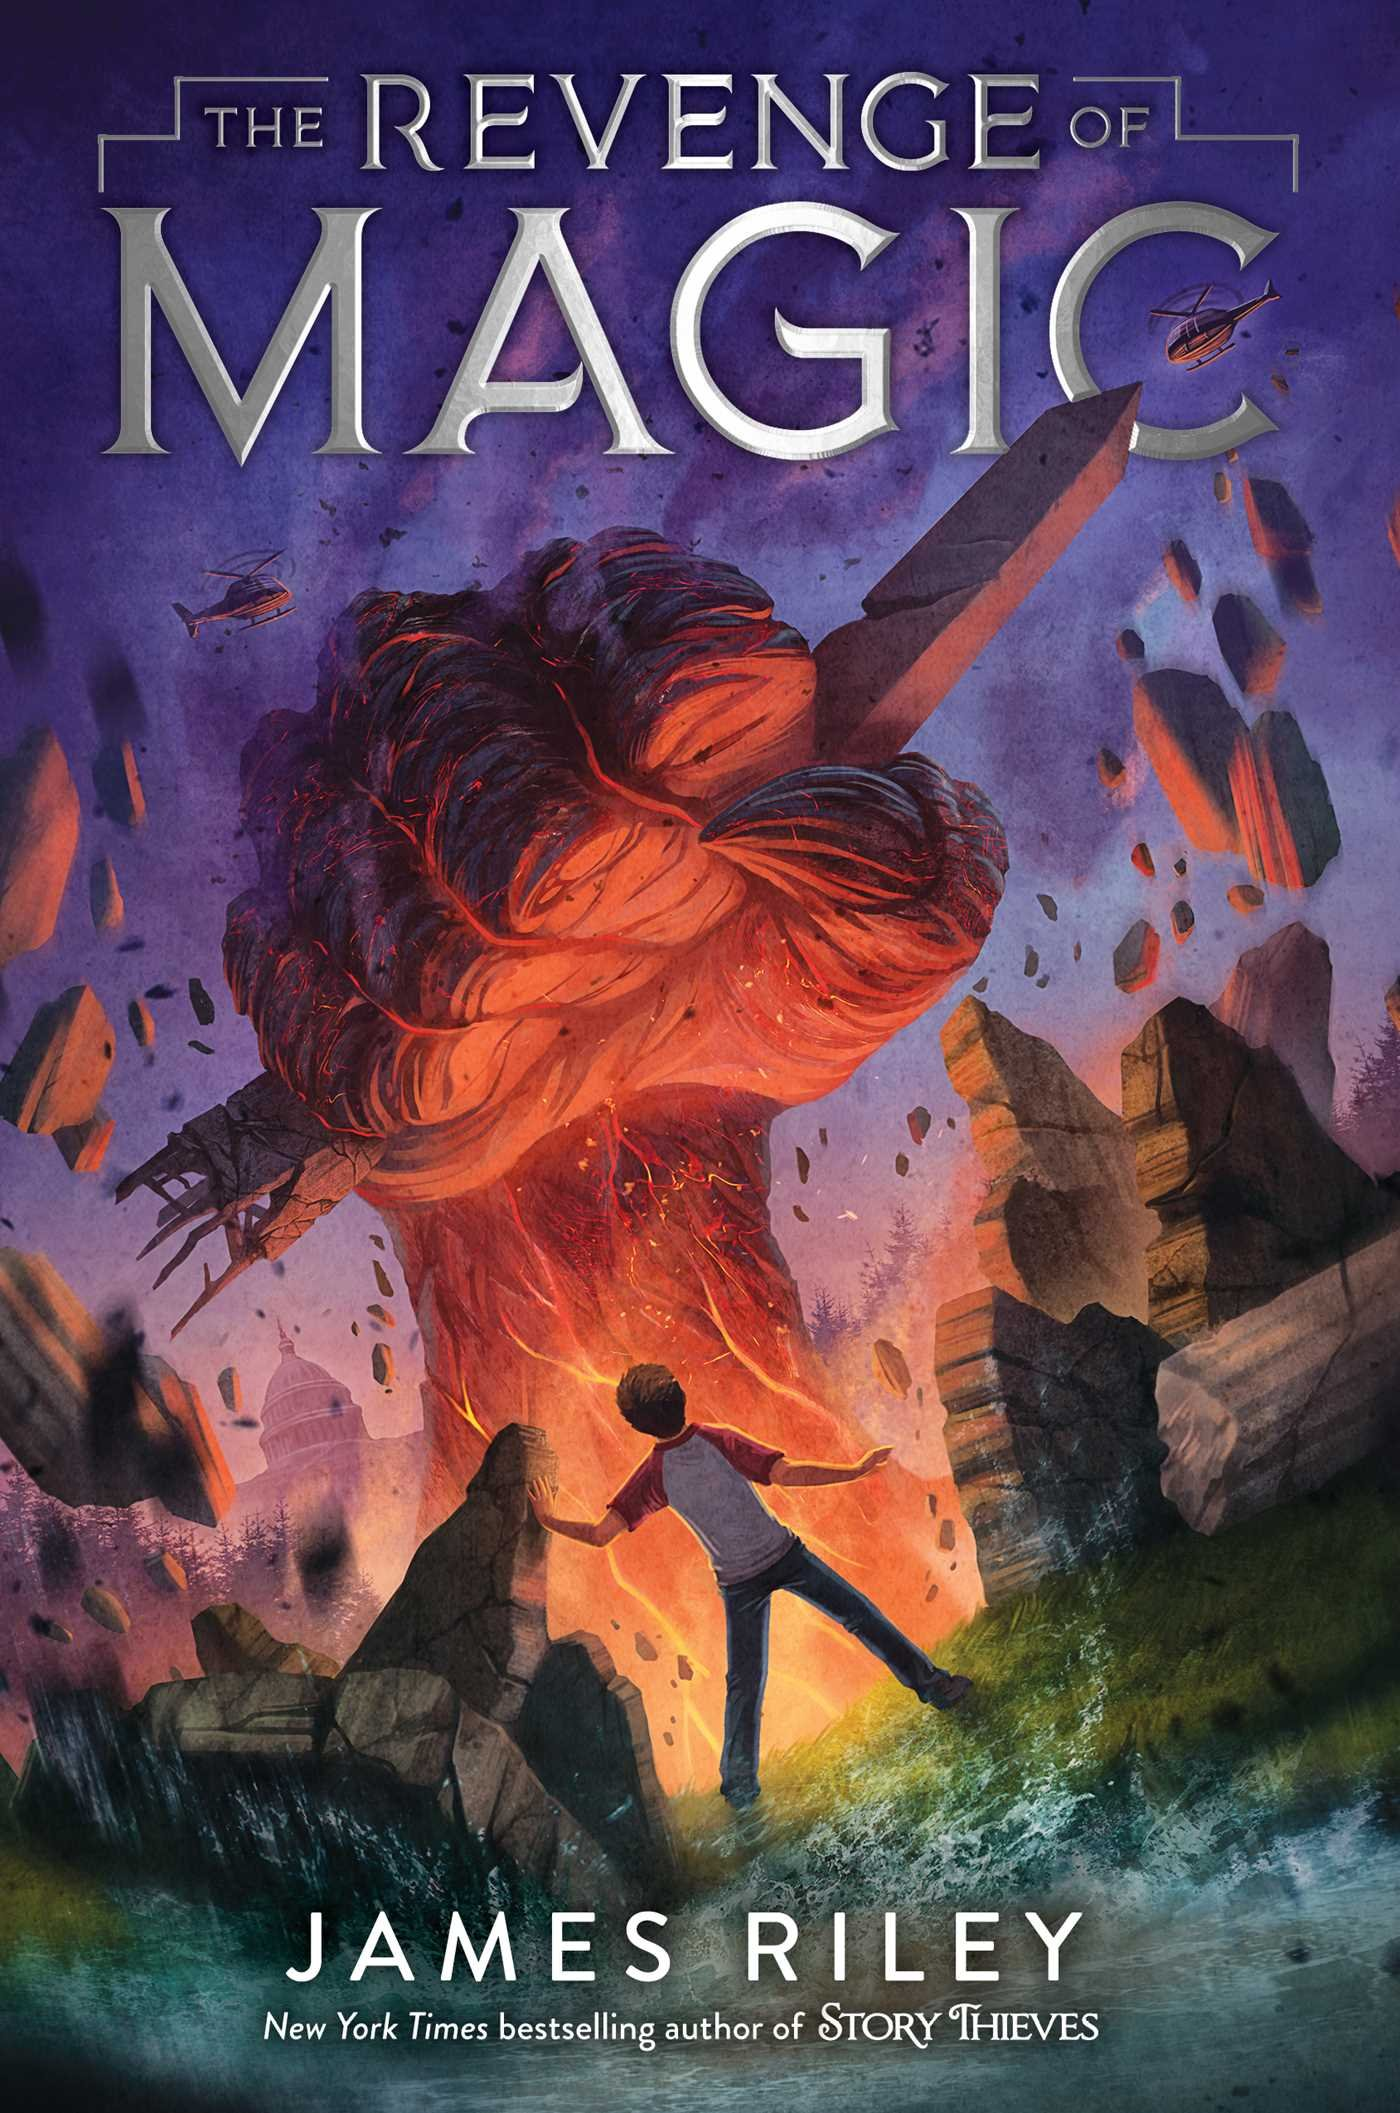 New book by James Riley: The Revenge of Magic